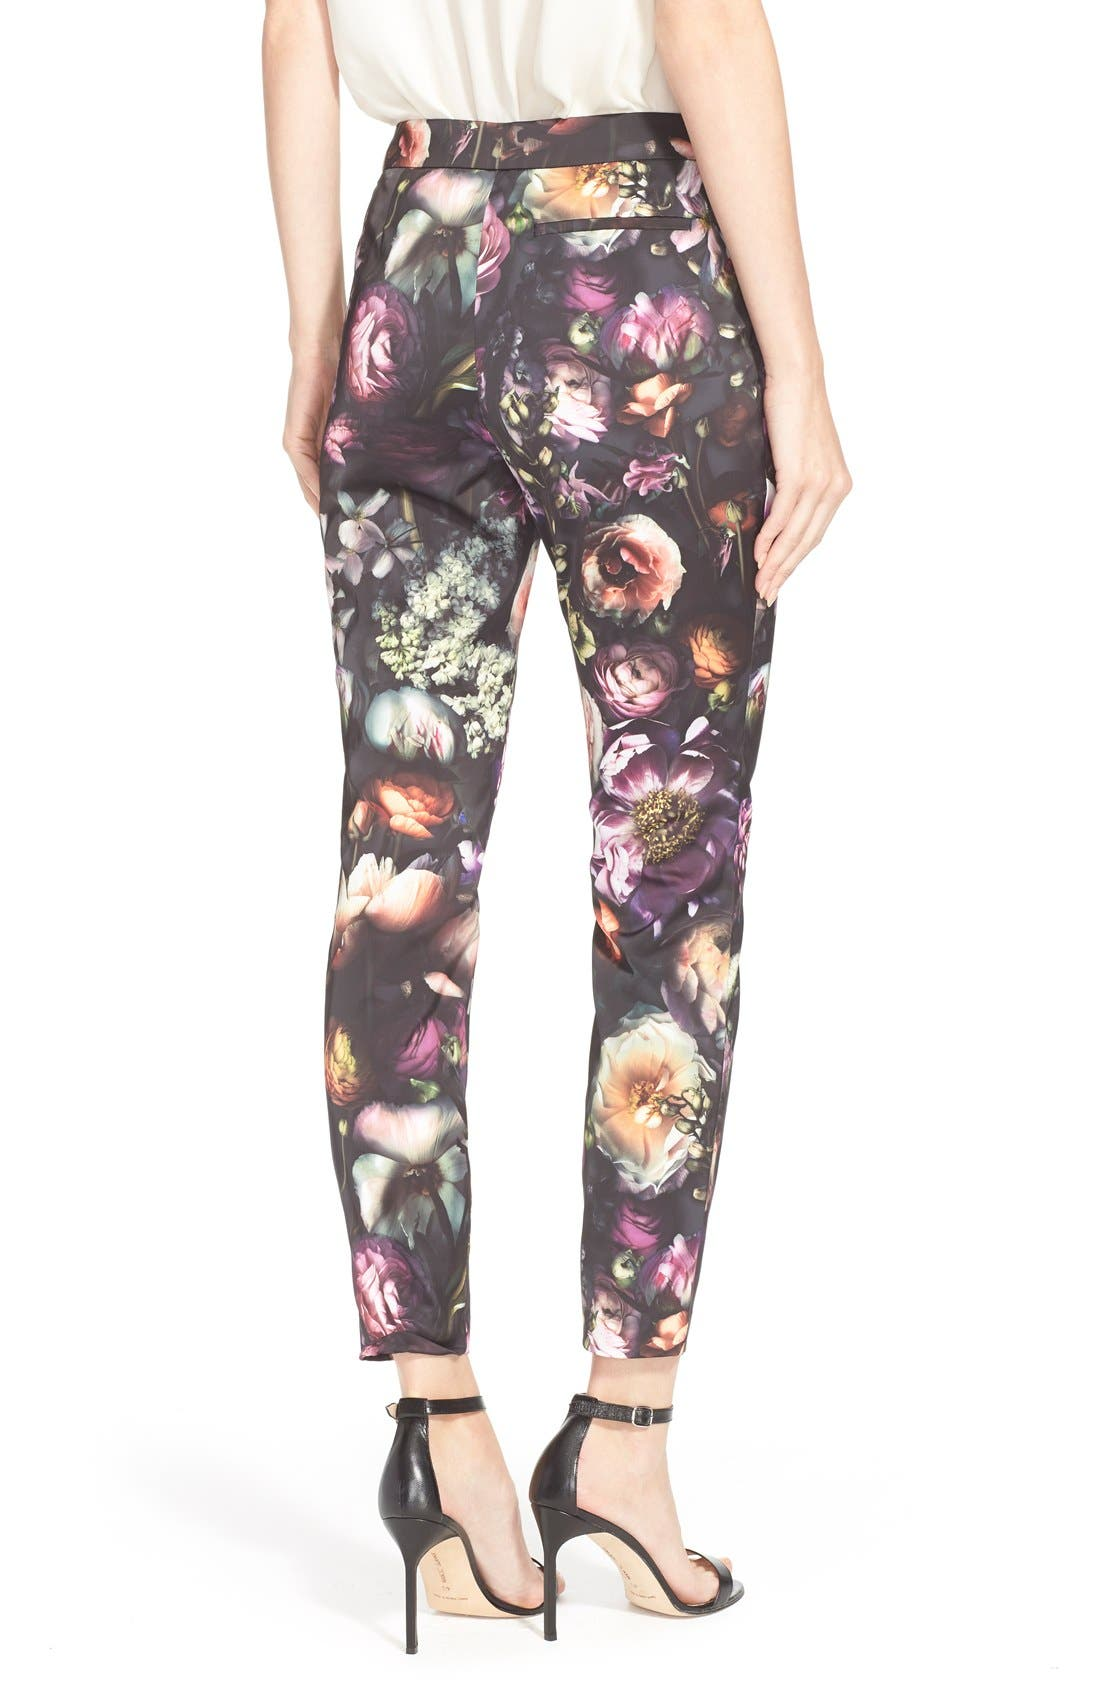 TED BAKER LONDON,                             'Anuja' Floral Print Trousers,                             Alternate thumbnail 4, color,                             021